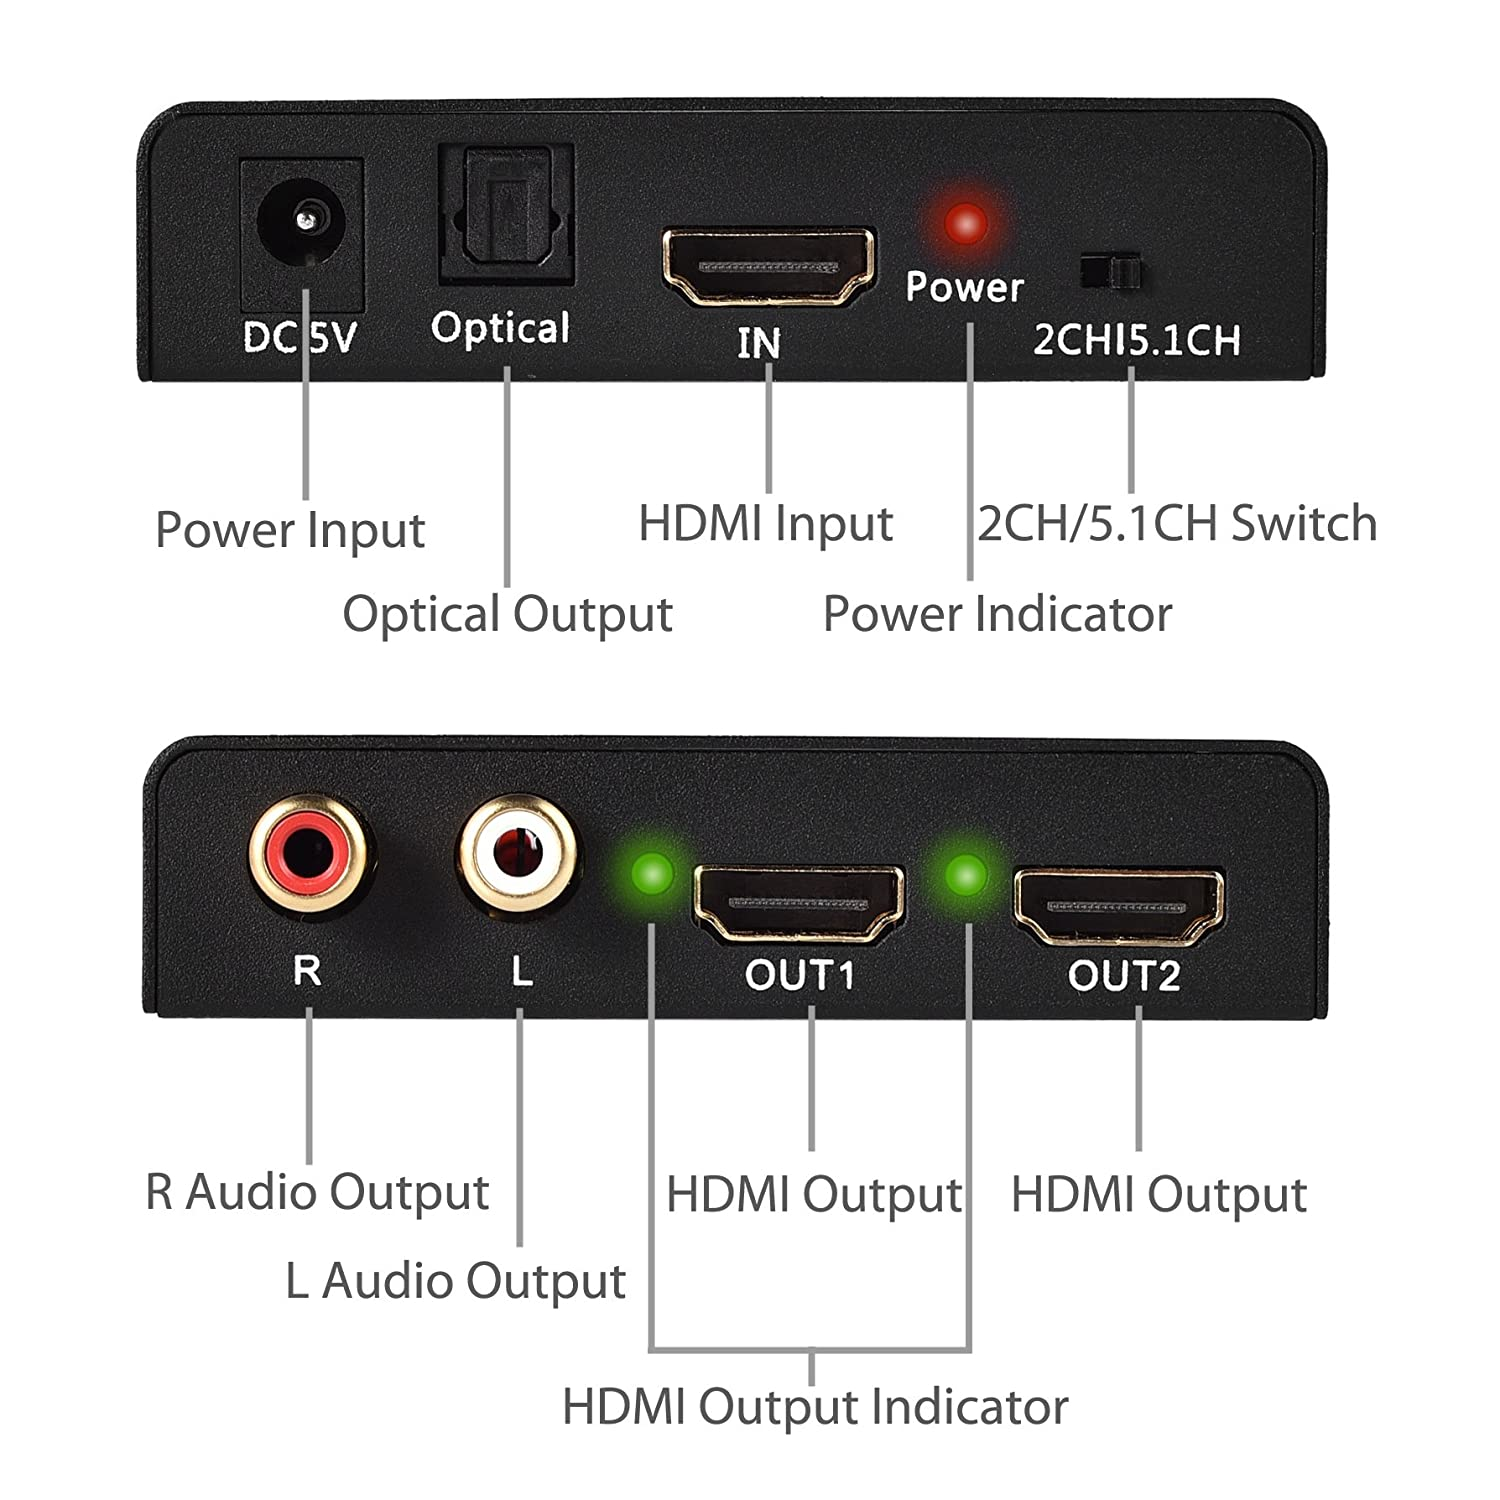 Neoteck 2 Way Hdmi Splitter With Audio Extracter Optical Switch 2ch 51ch Sound Channel Output Support Reading Modes Of Edid Can Between External Edidtv And Built In Edid2ch 51chto Select Stereo